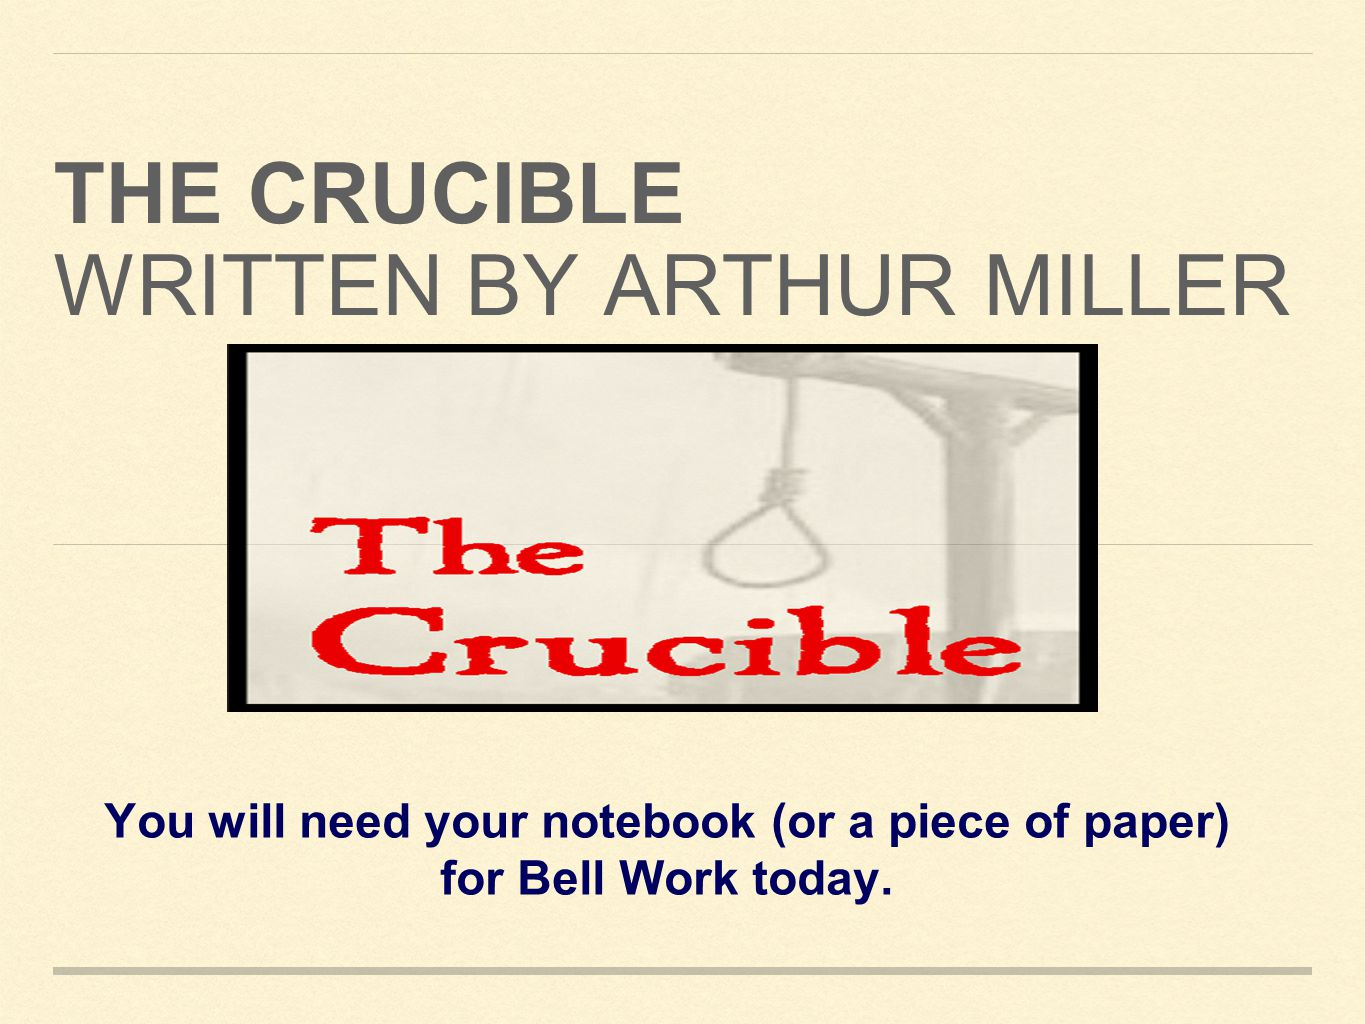 why arthur miller wrote the crucible essay The crucible a play written by arthur miller is a story about the salem witch trials the word crucible has multiple meanings, miller chose the crucible as a title to try to express the intricacy of the play's message the usual and most widely used definition for crucible, according webster.